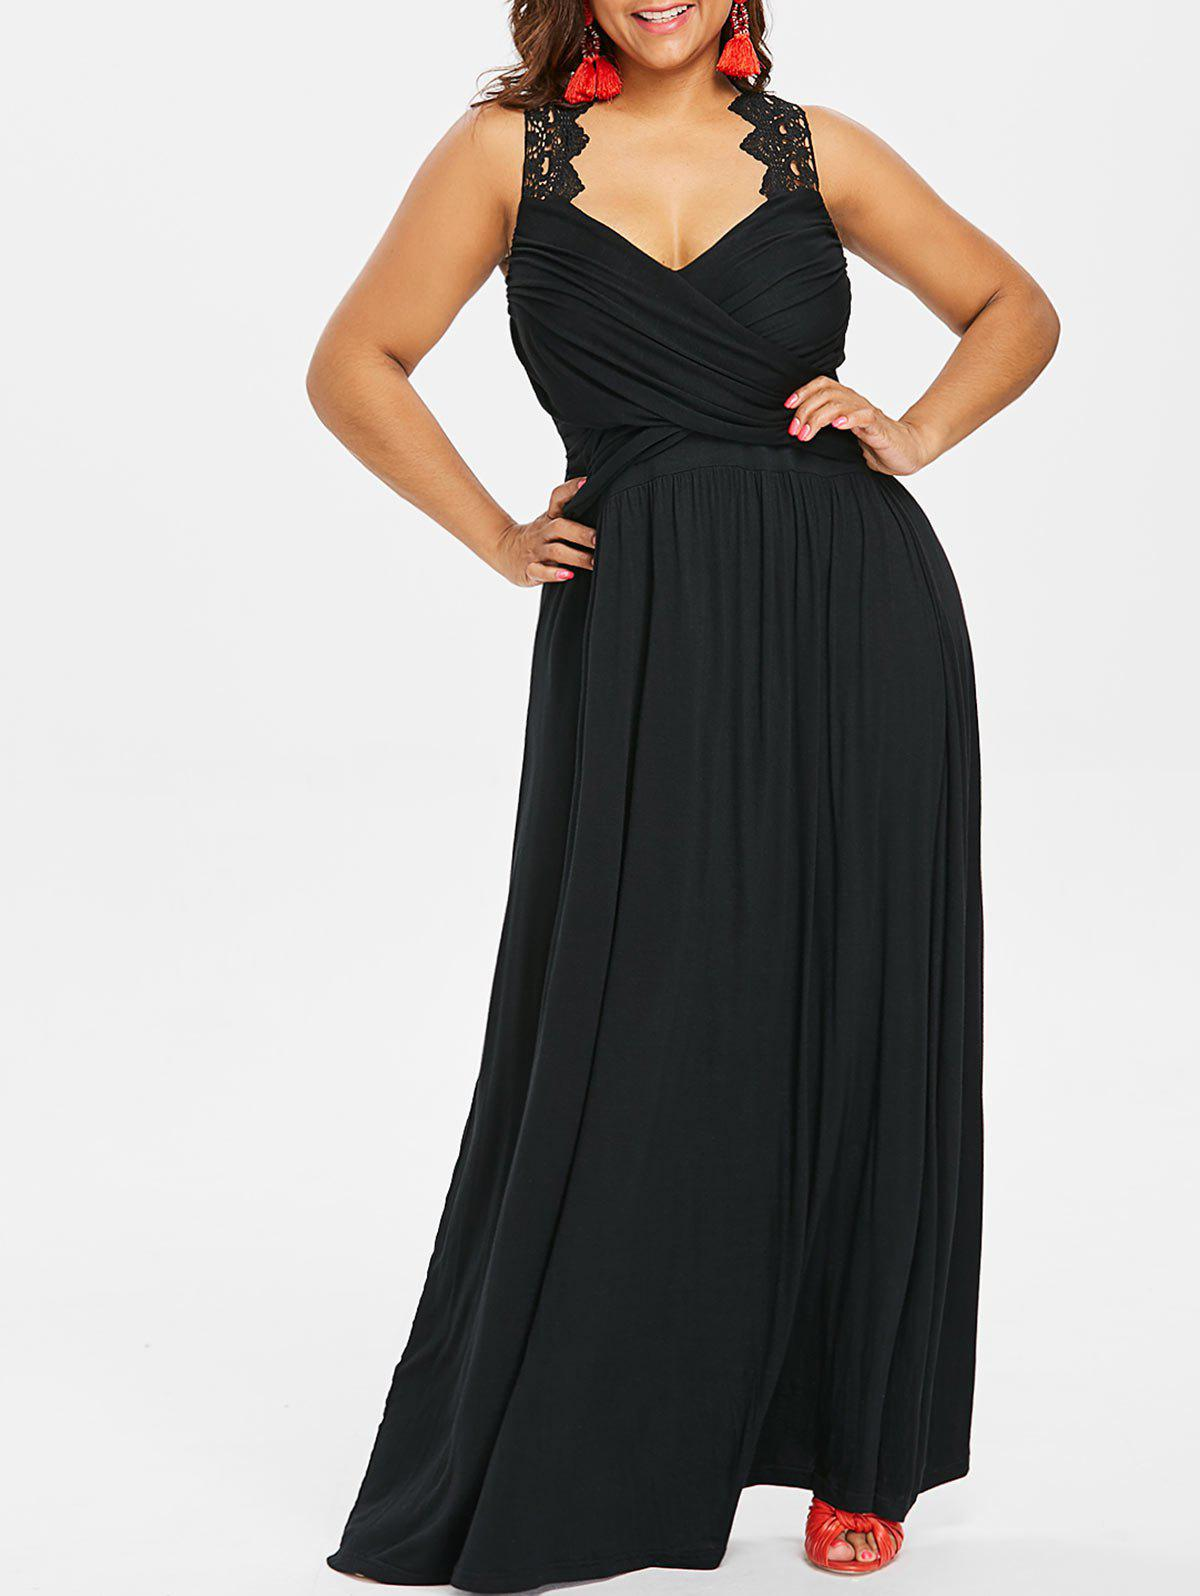 Empire Waist Plus Size Maxi Sweetheart Dress